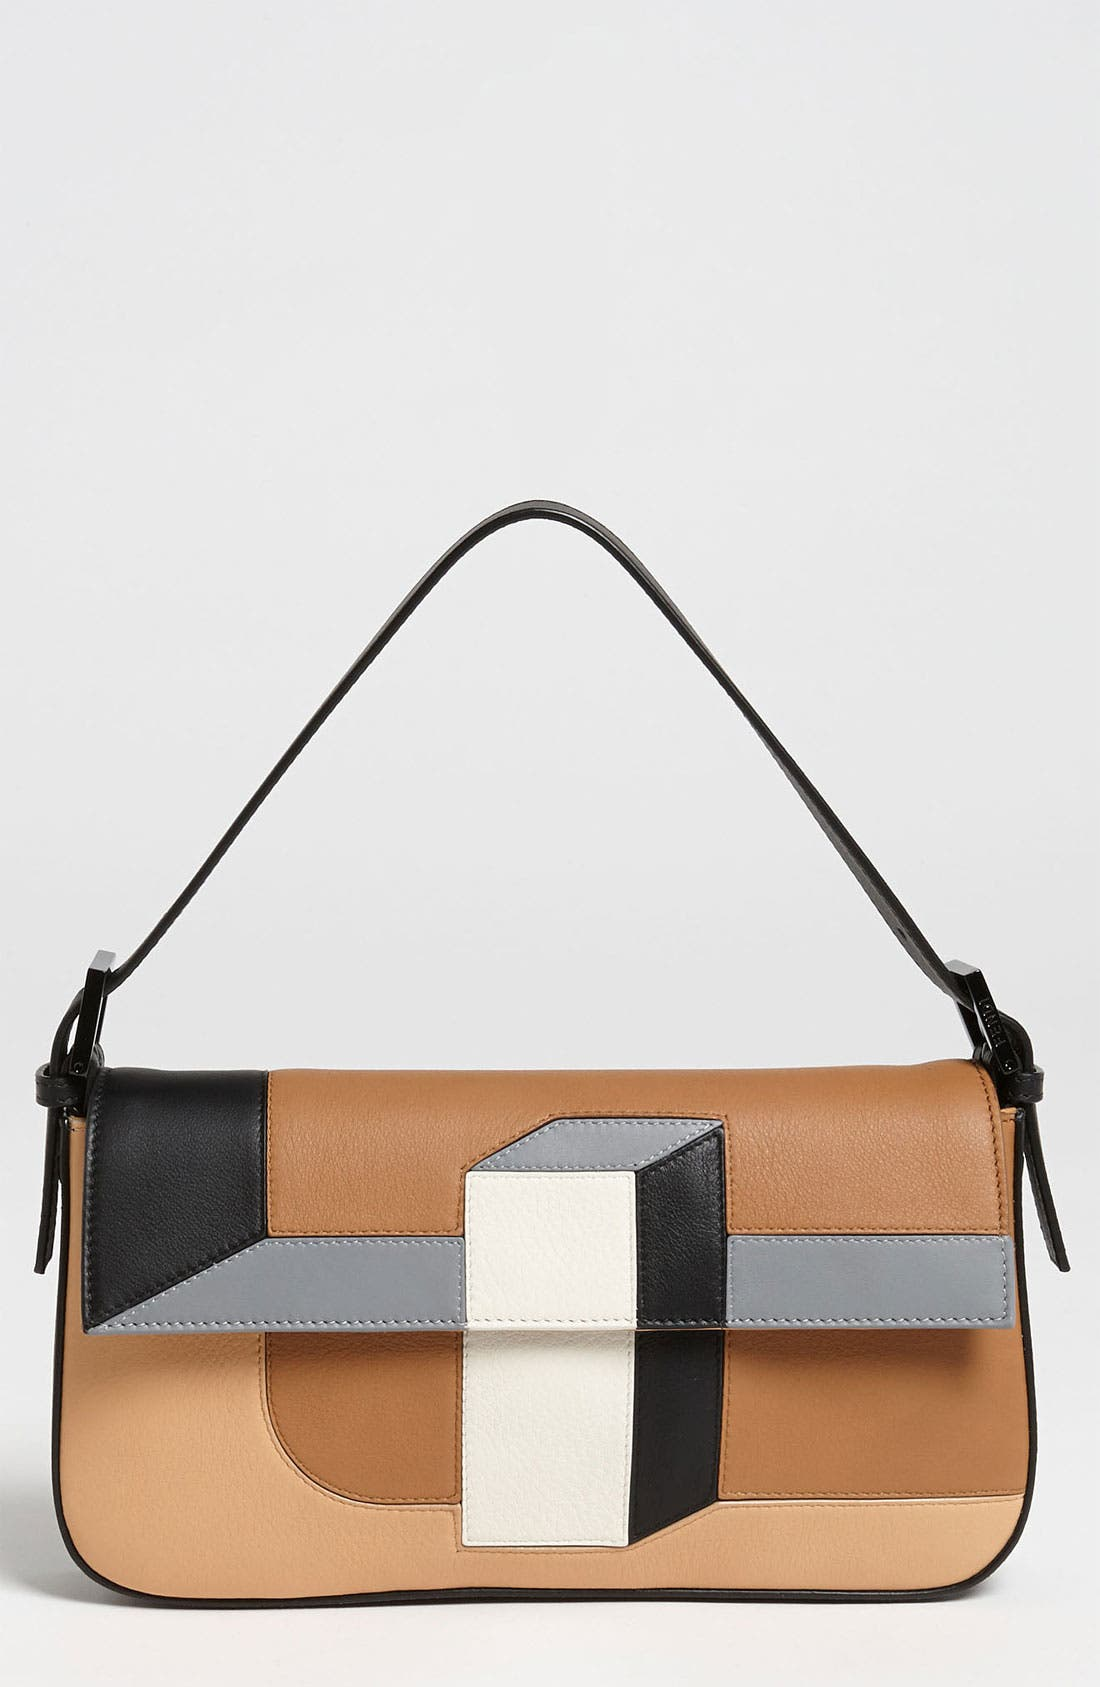 Main Image - Fendi '3D' Leather Baguette